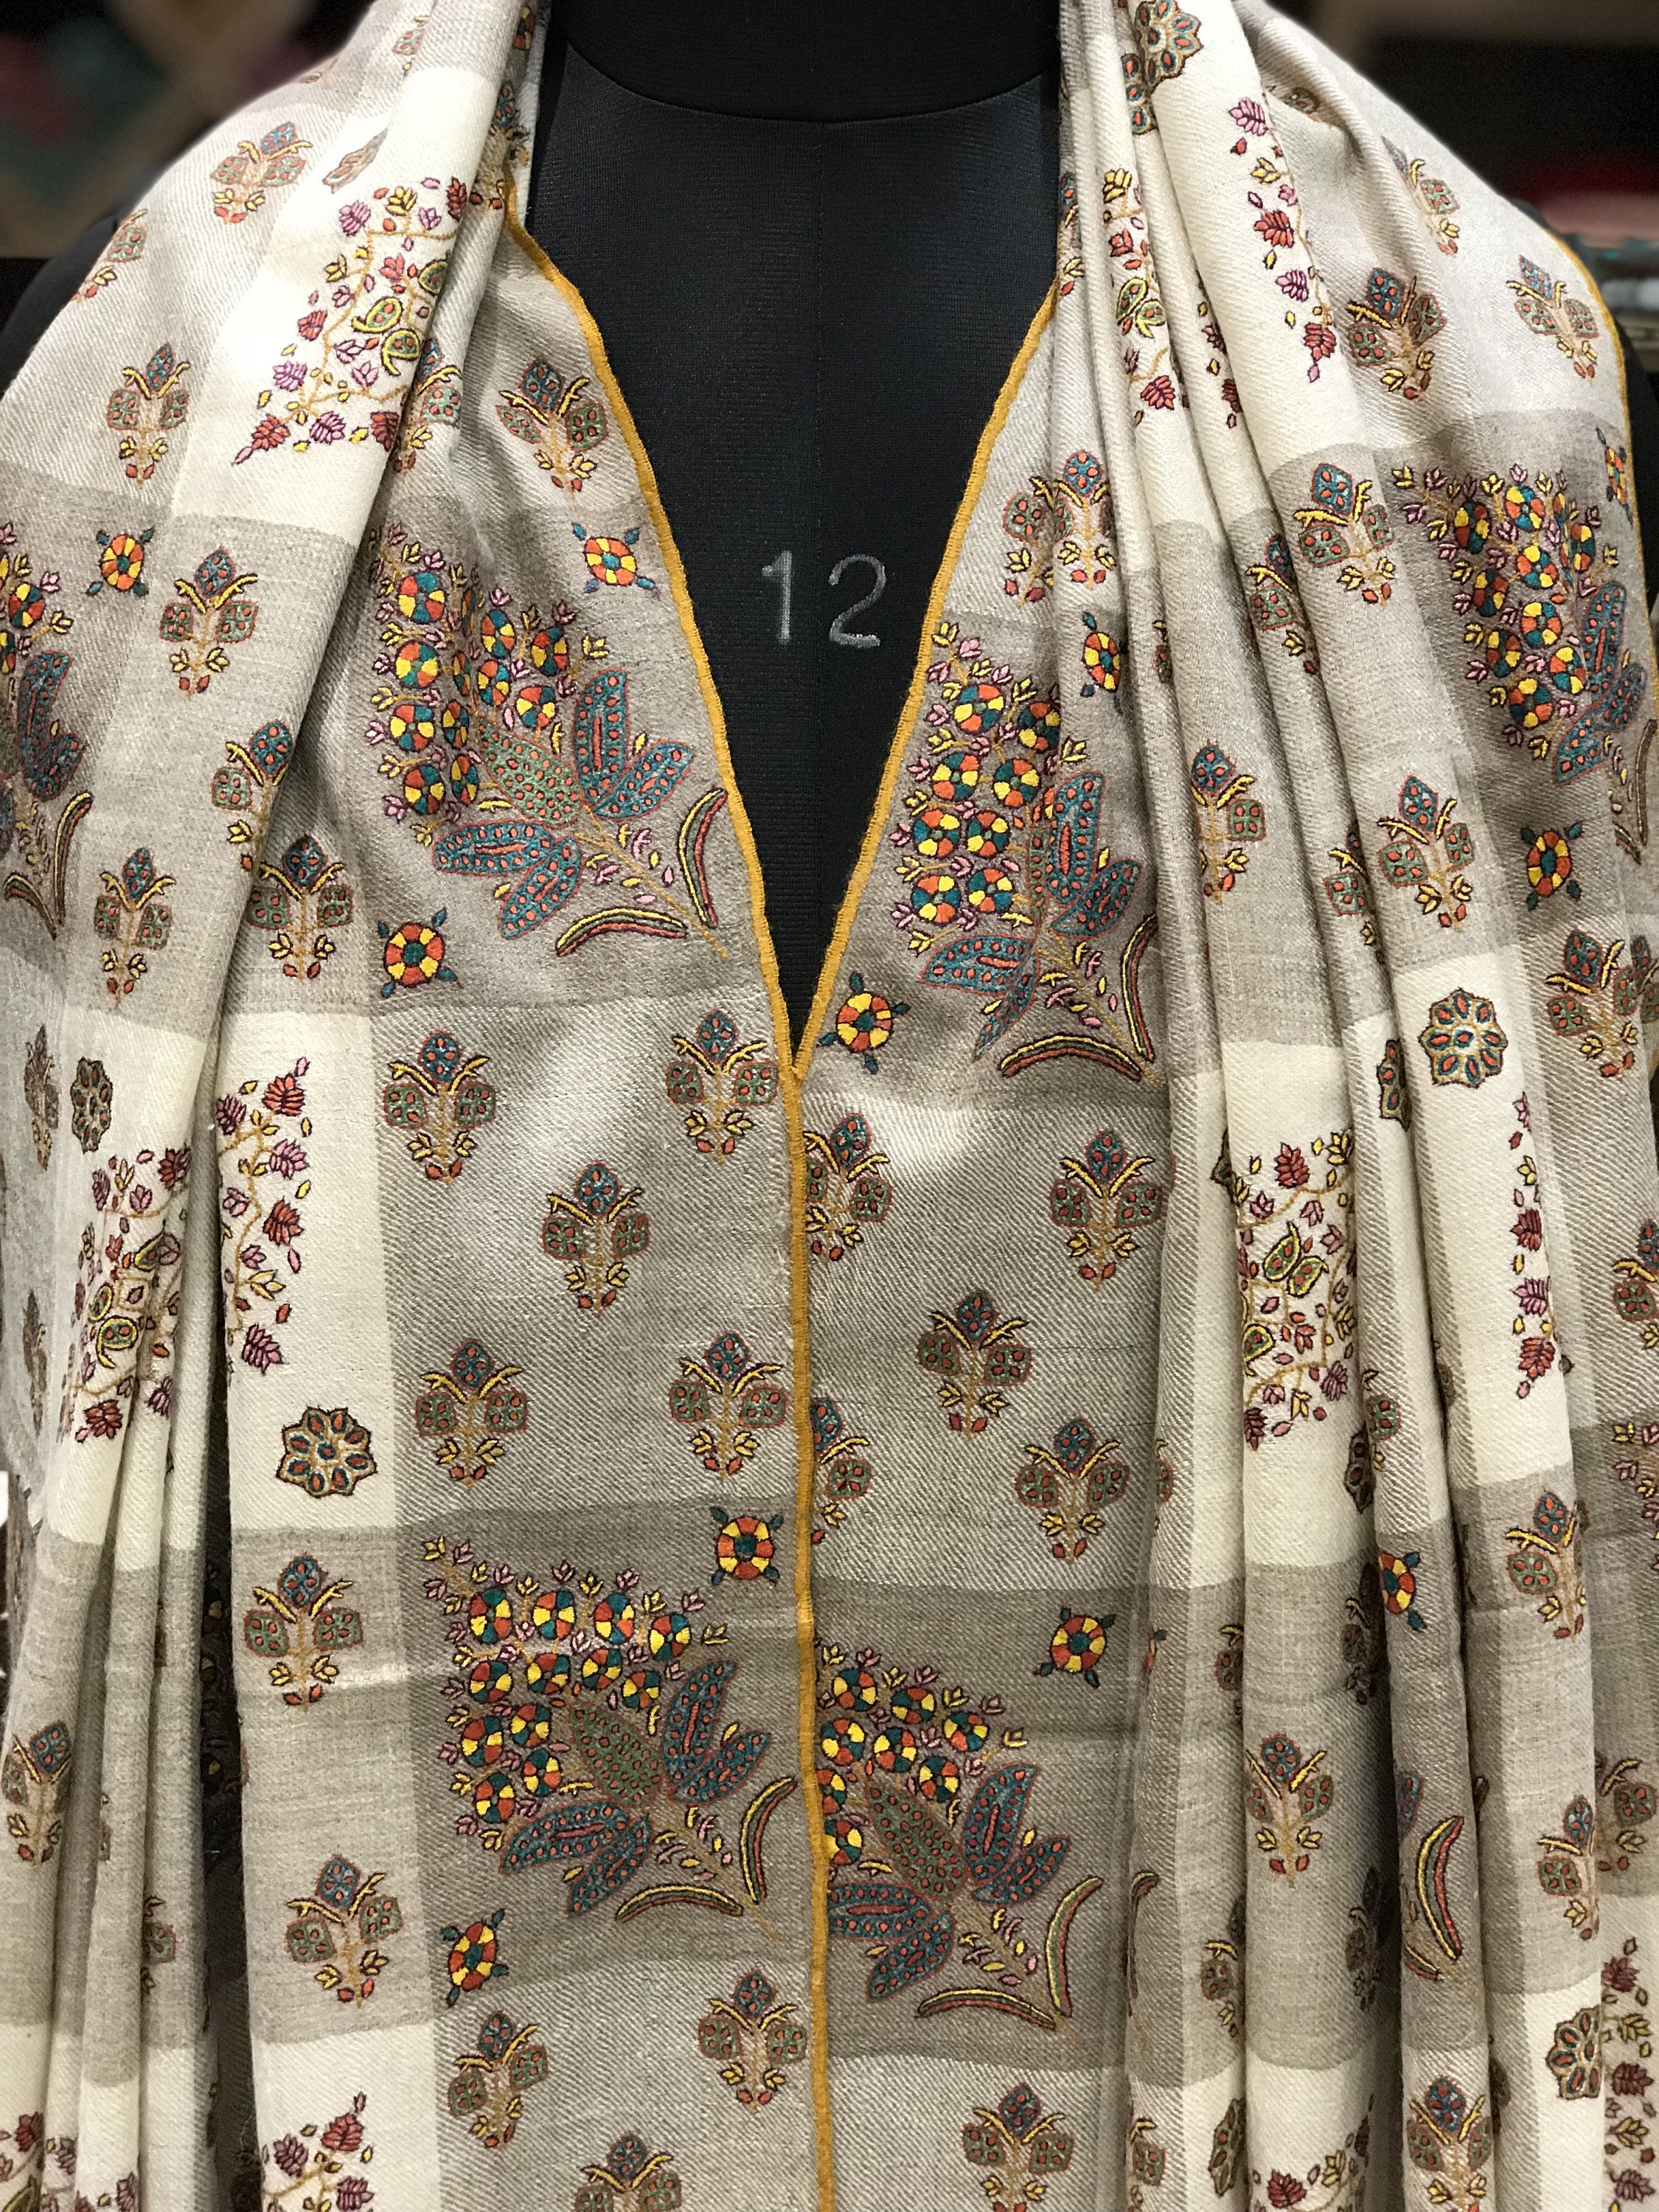 812dcd9d65 Papier Mache Hand Embroidered Pure Pashmina Shawl, White Pure Cashmere  Woman Shawl, Hand Embroidery